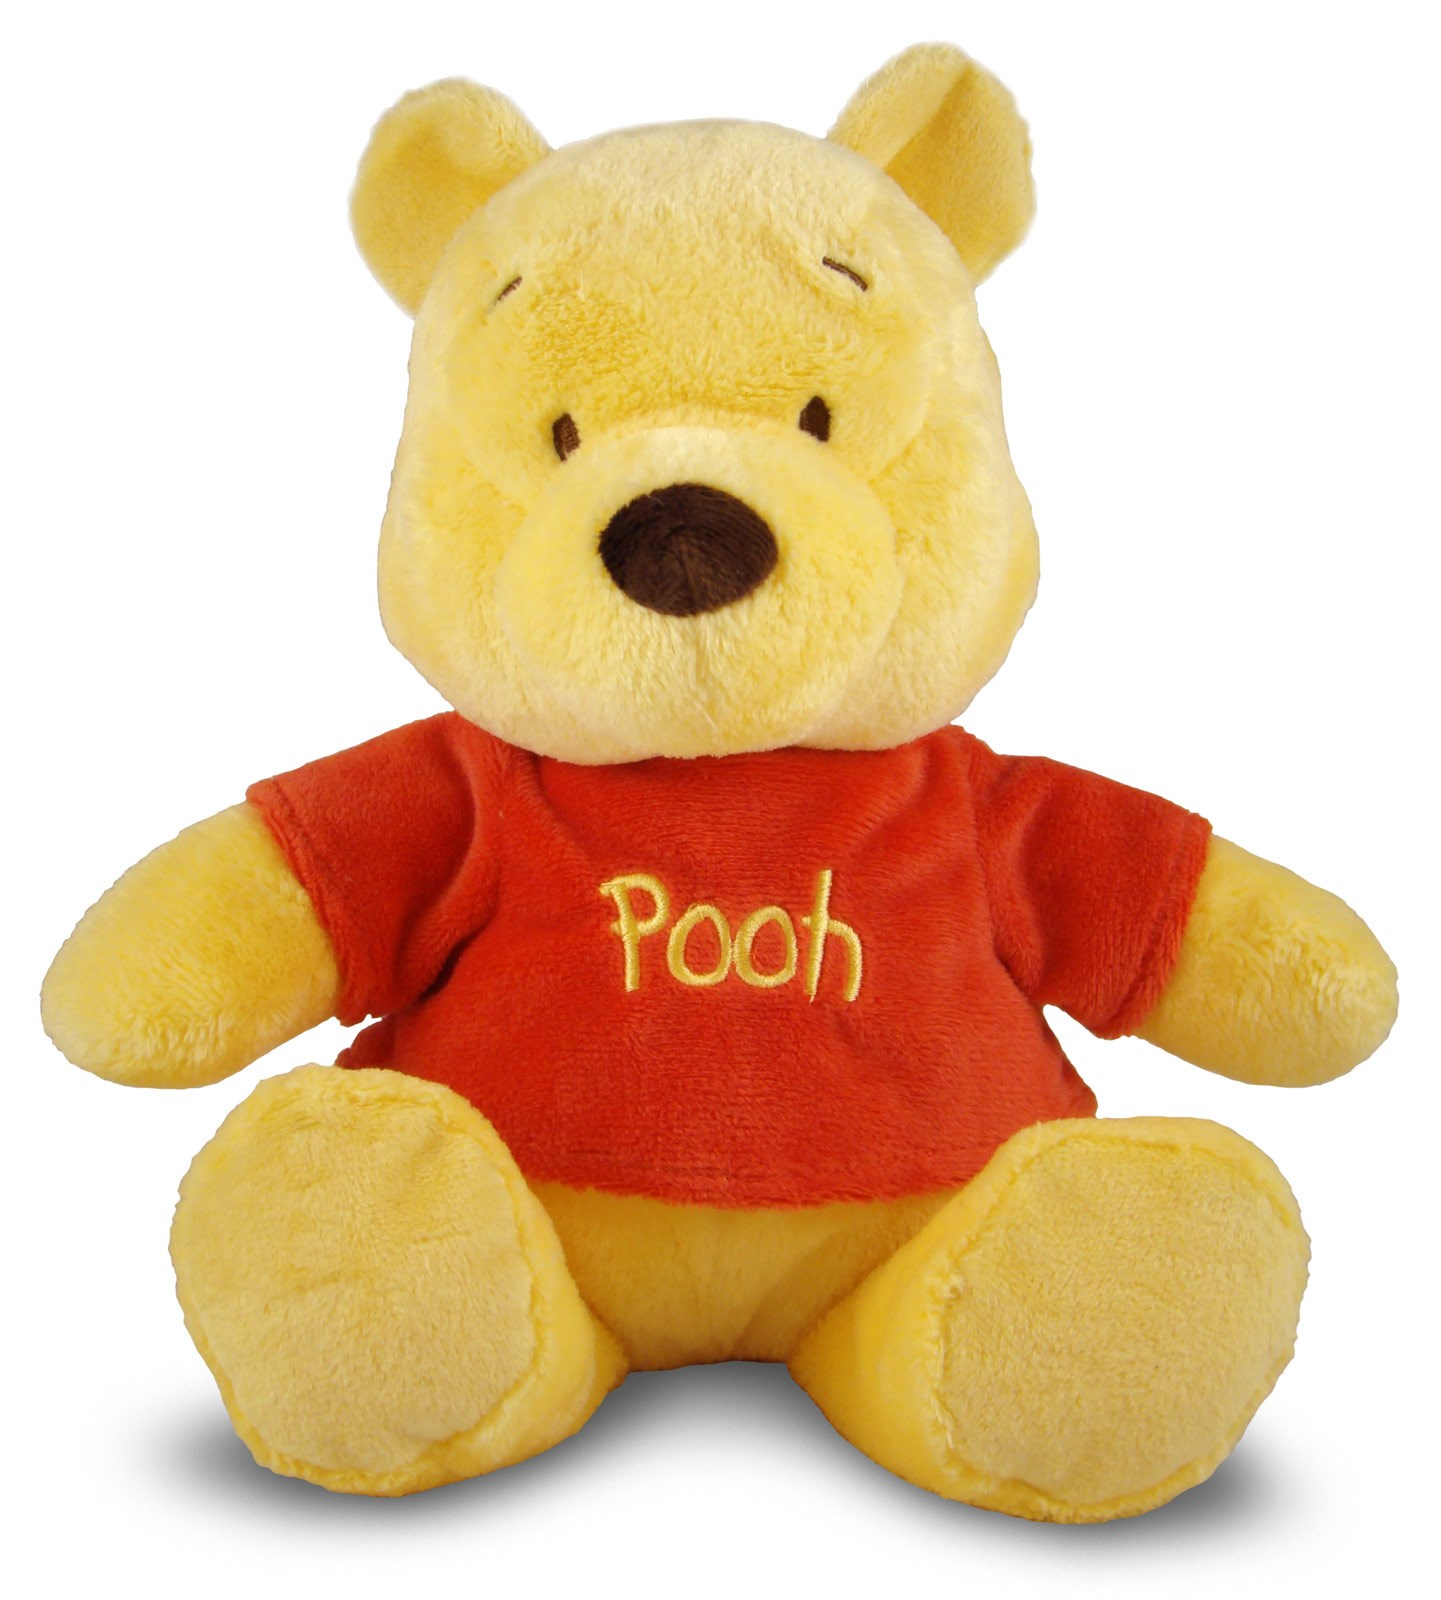 Disney Winnie the Pooh Plush: Winnie the Pooh Party Games for Kids